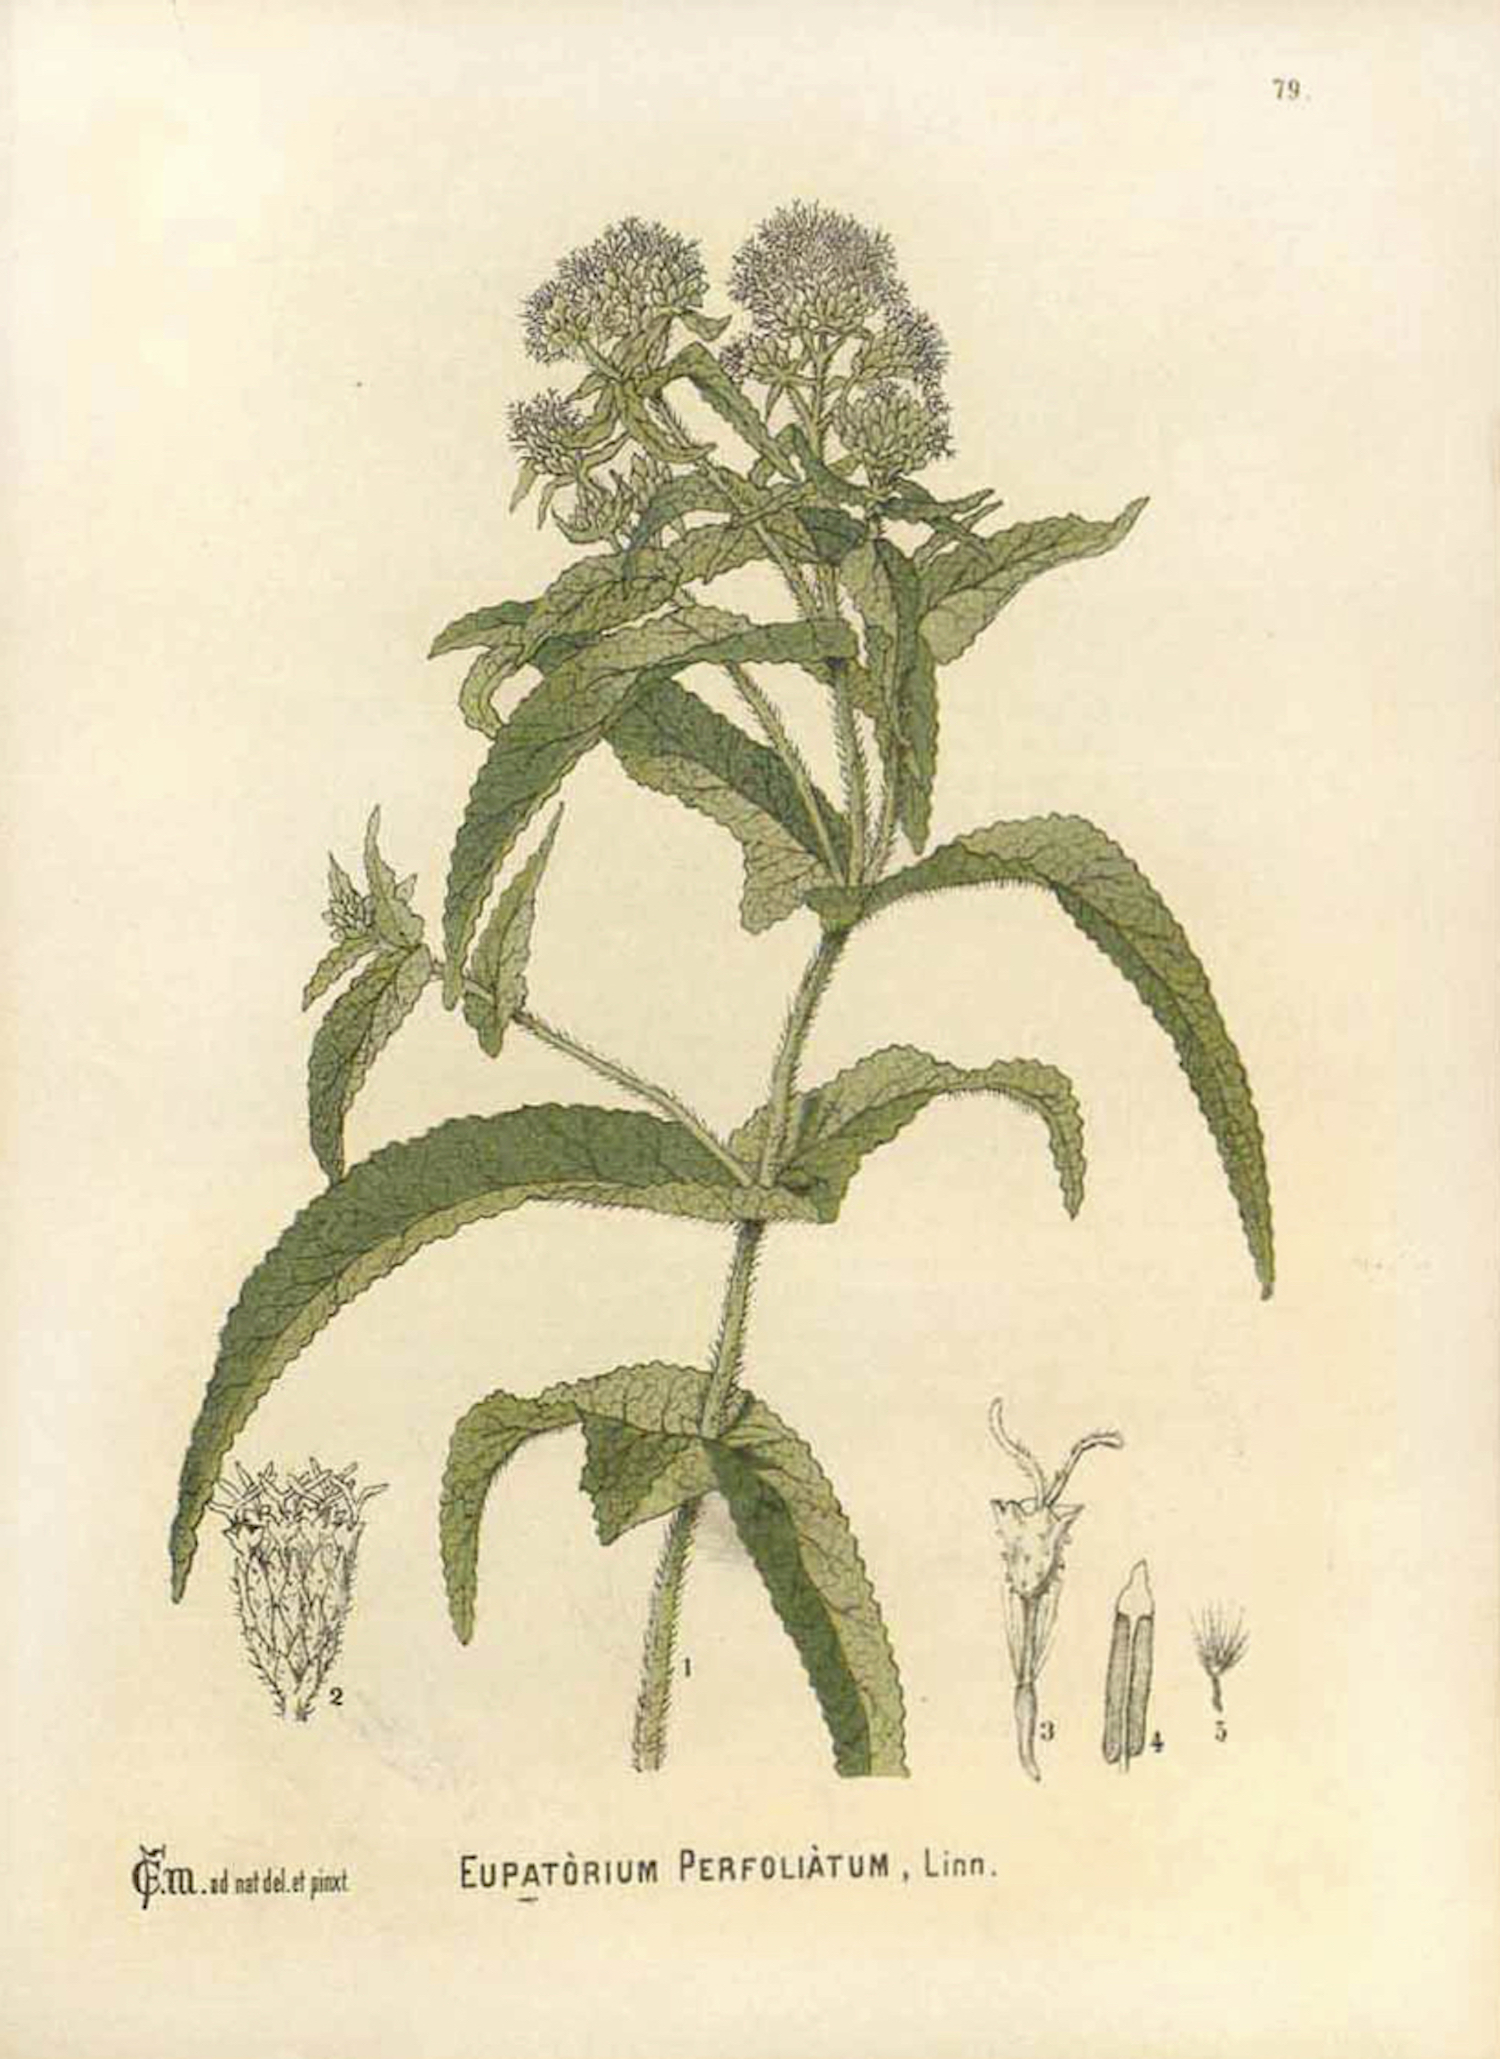 Common Boneset illustration by C.F. Millspaugh circa 1892.